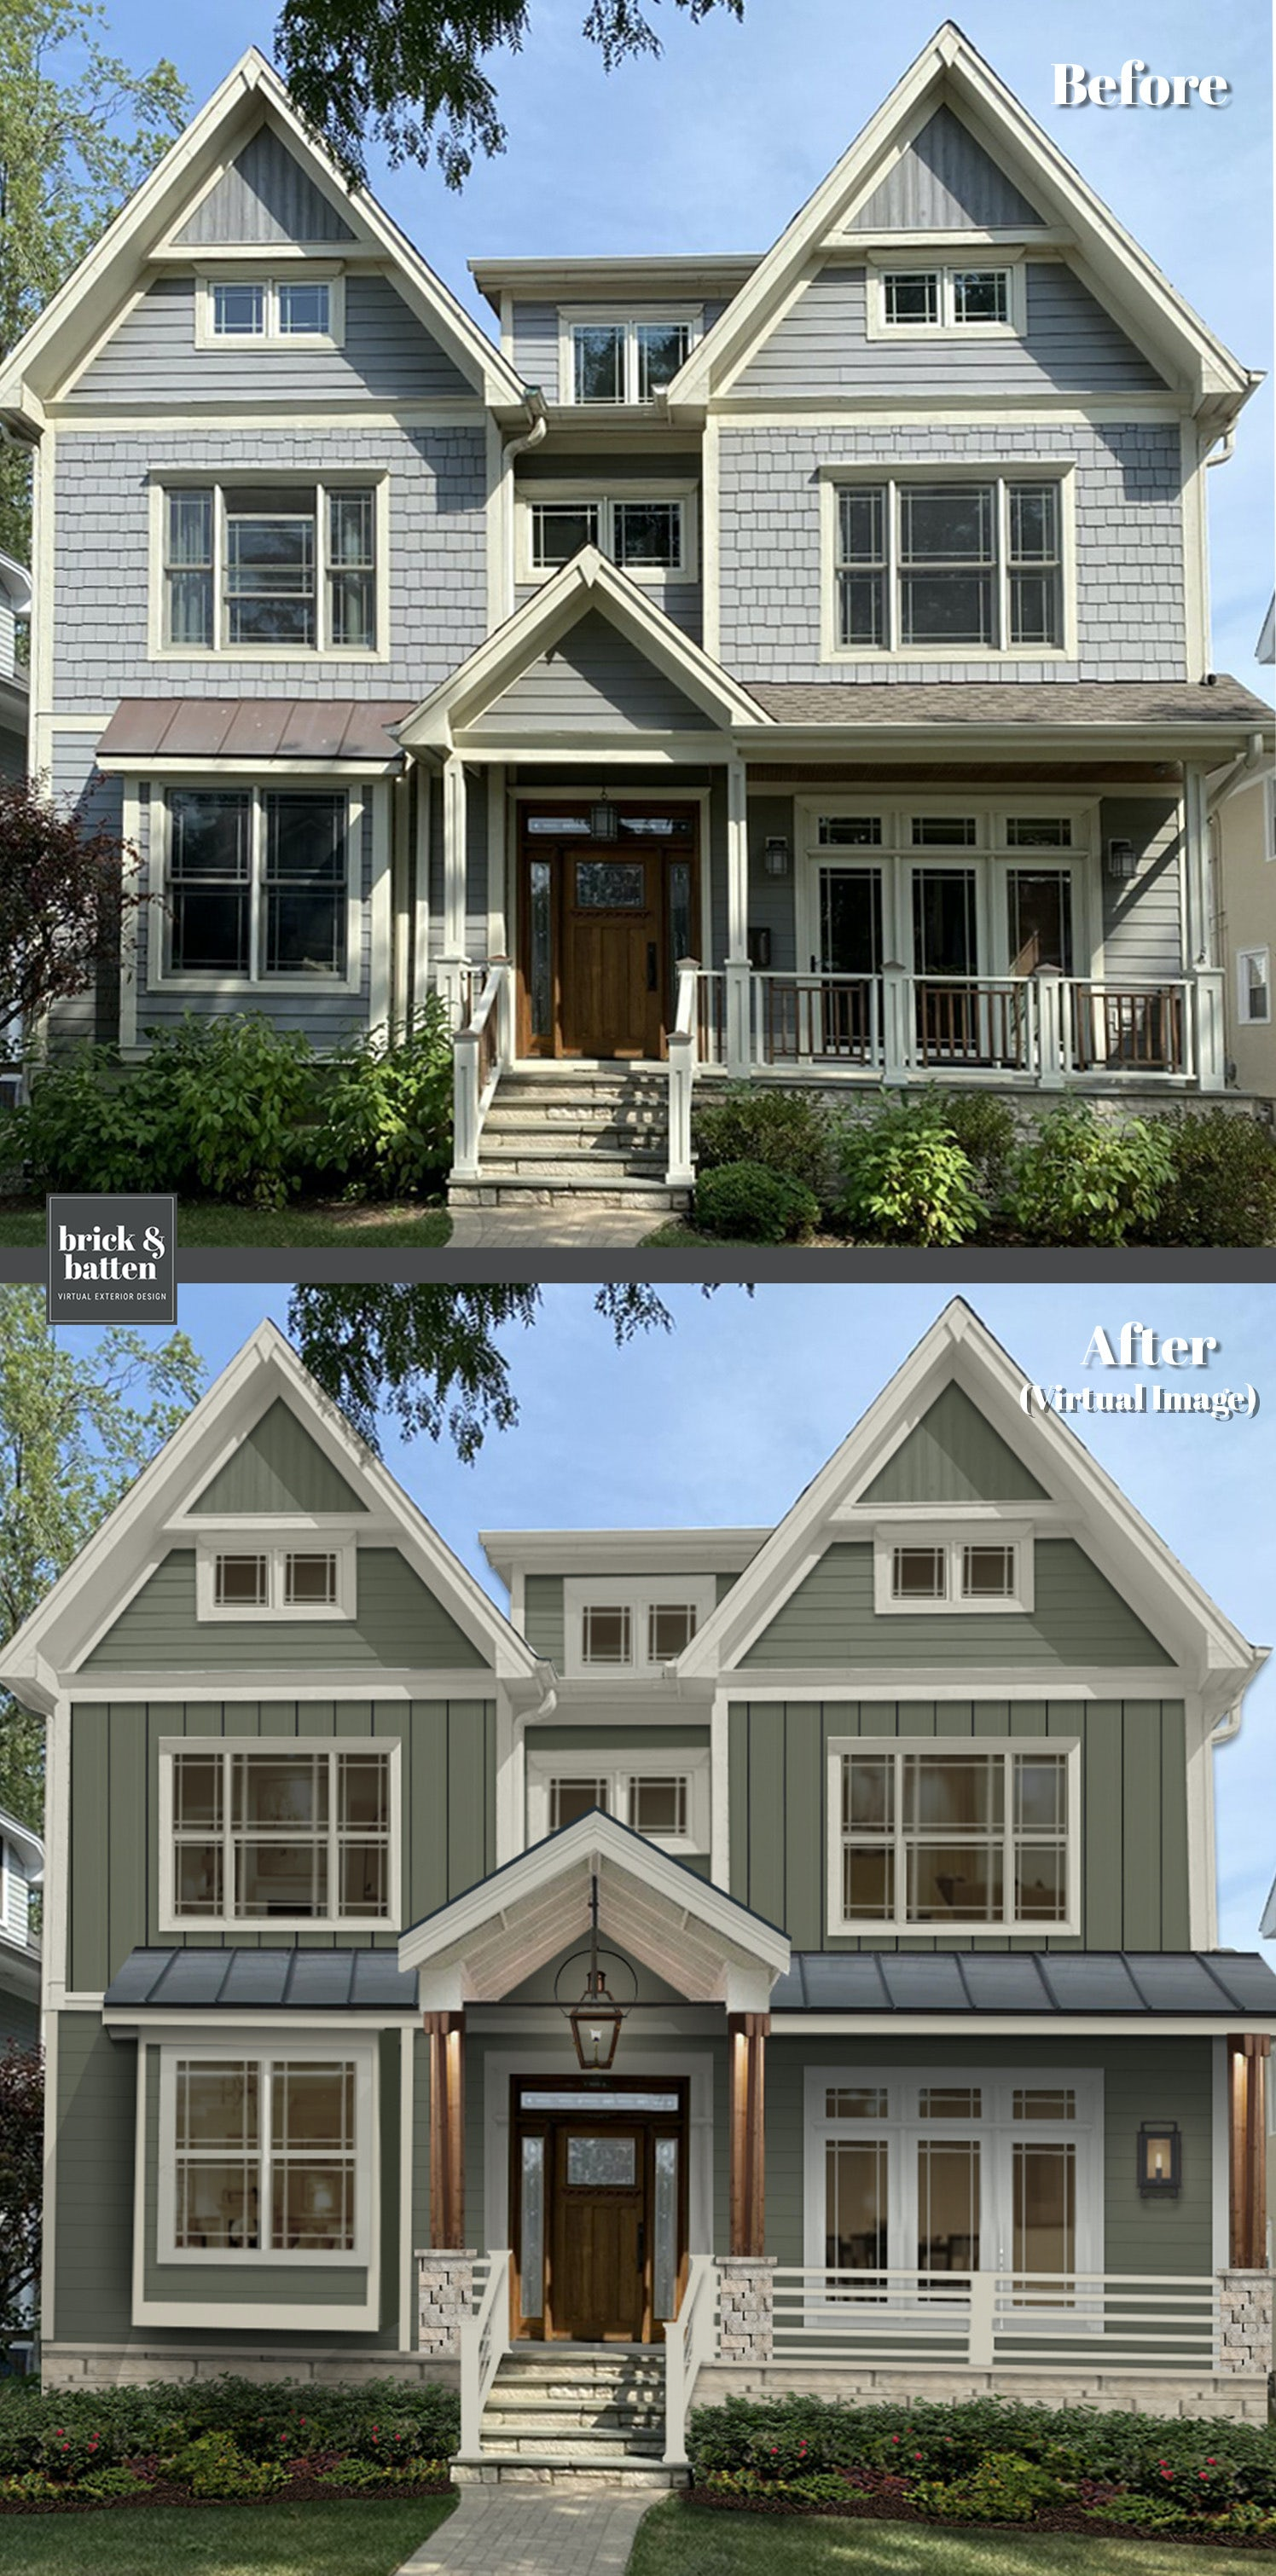 Earthy Green Neighborhood Park James Hardie 2021 Paint Trend